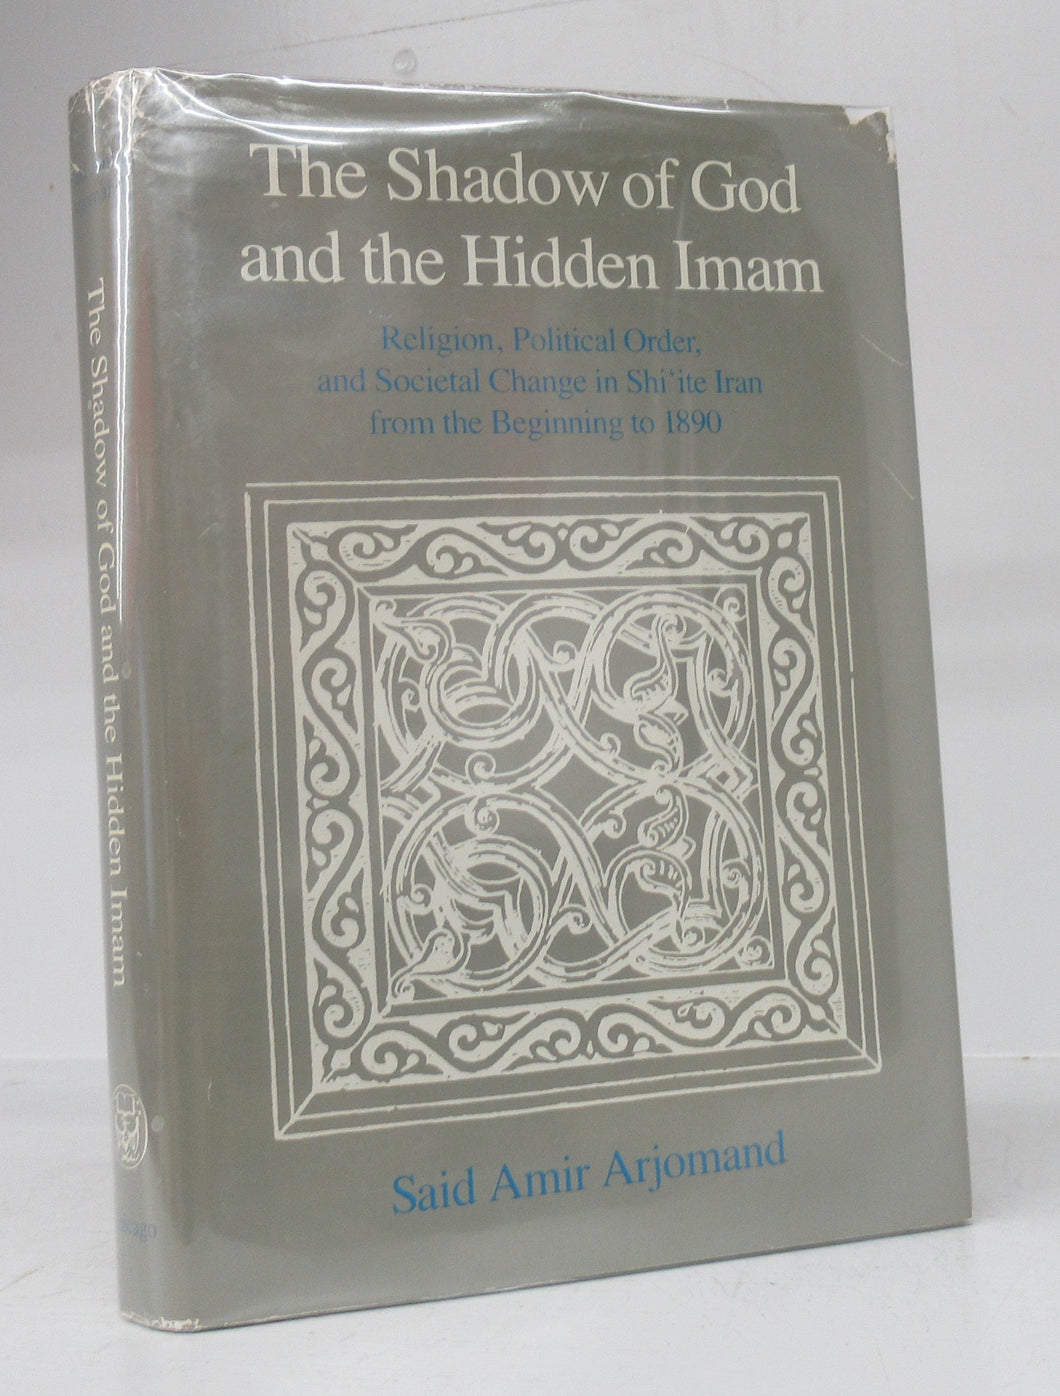 The Shadow of God and the Hidden Imam: Religion, Political Order, and Societal Change in Shi'ite Iran from the Beginning to 1890